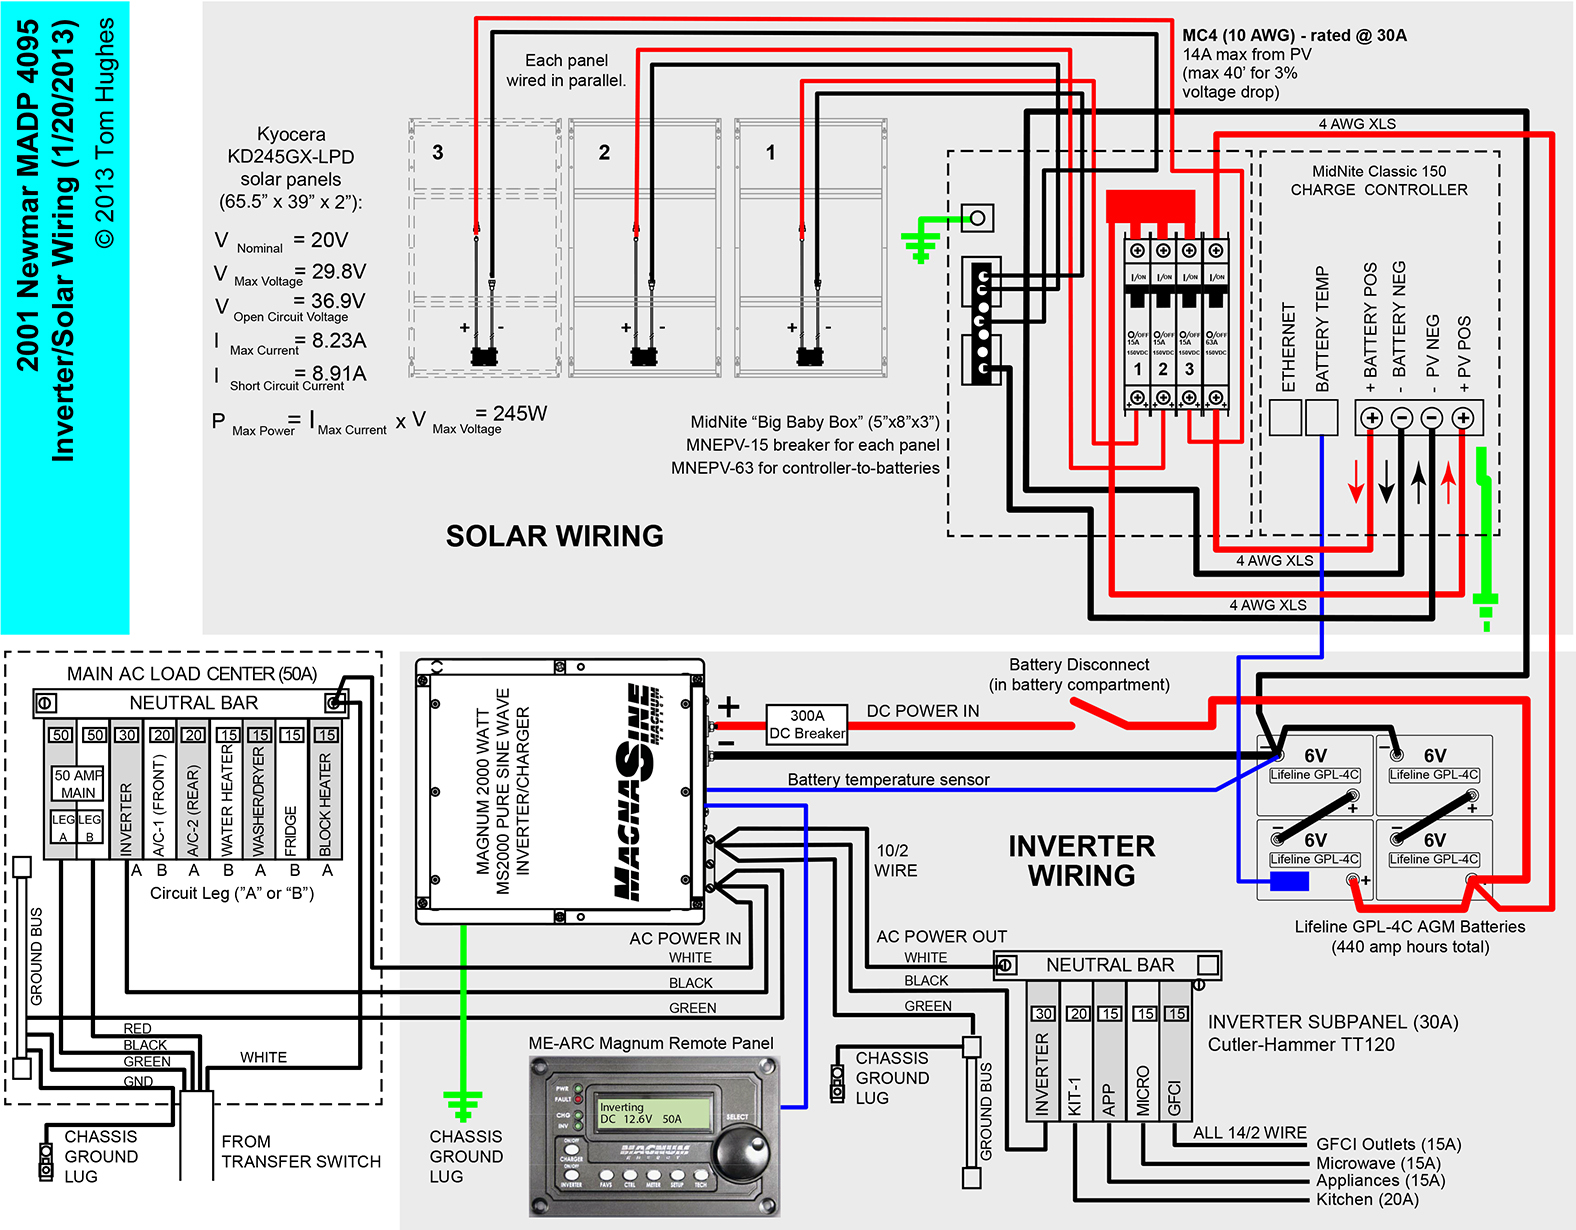 ms2000_newmar_inverter_wiring_01_20_2013 magnum inverter rvseniormoments rv inverter wiring diagram at creativeand.co